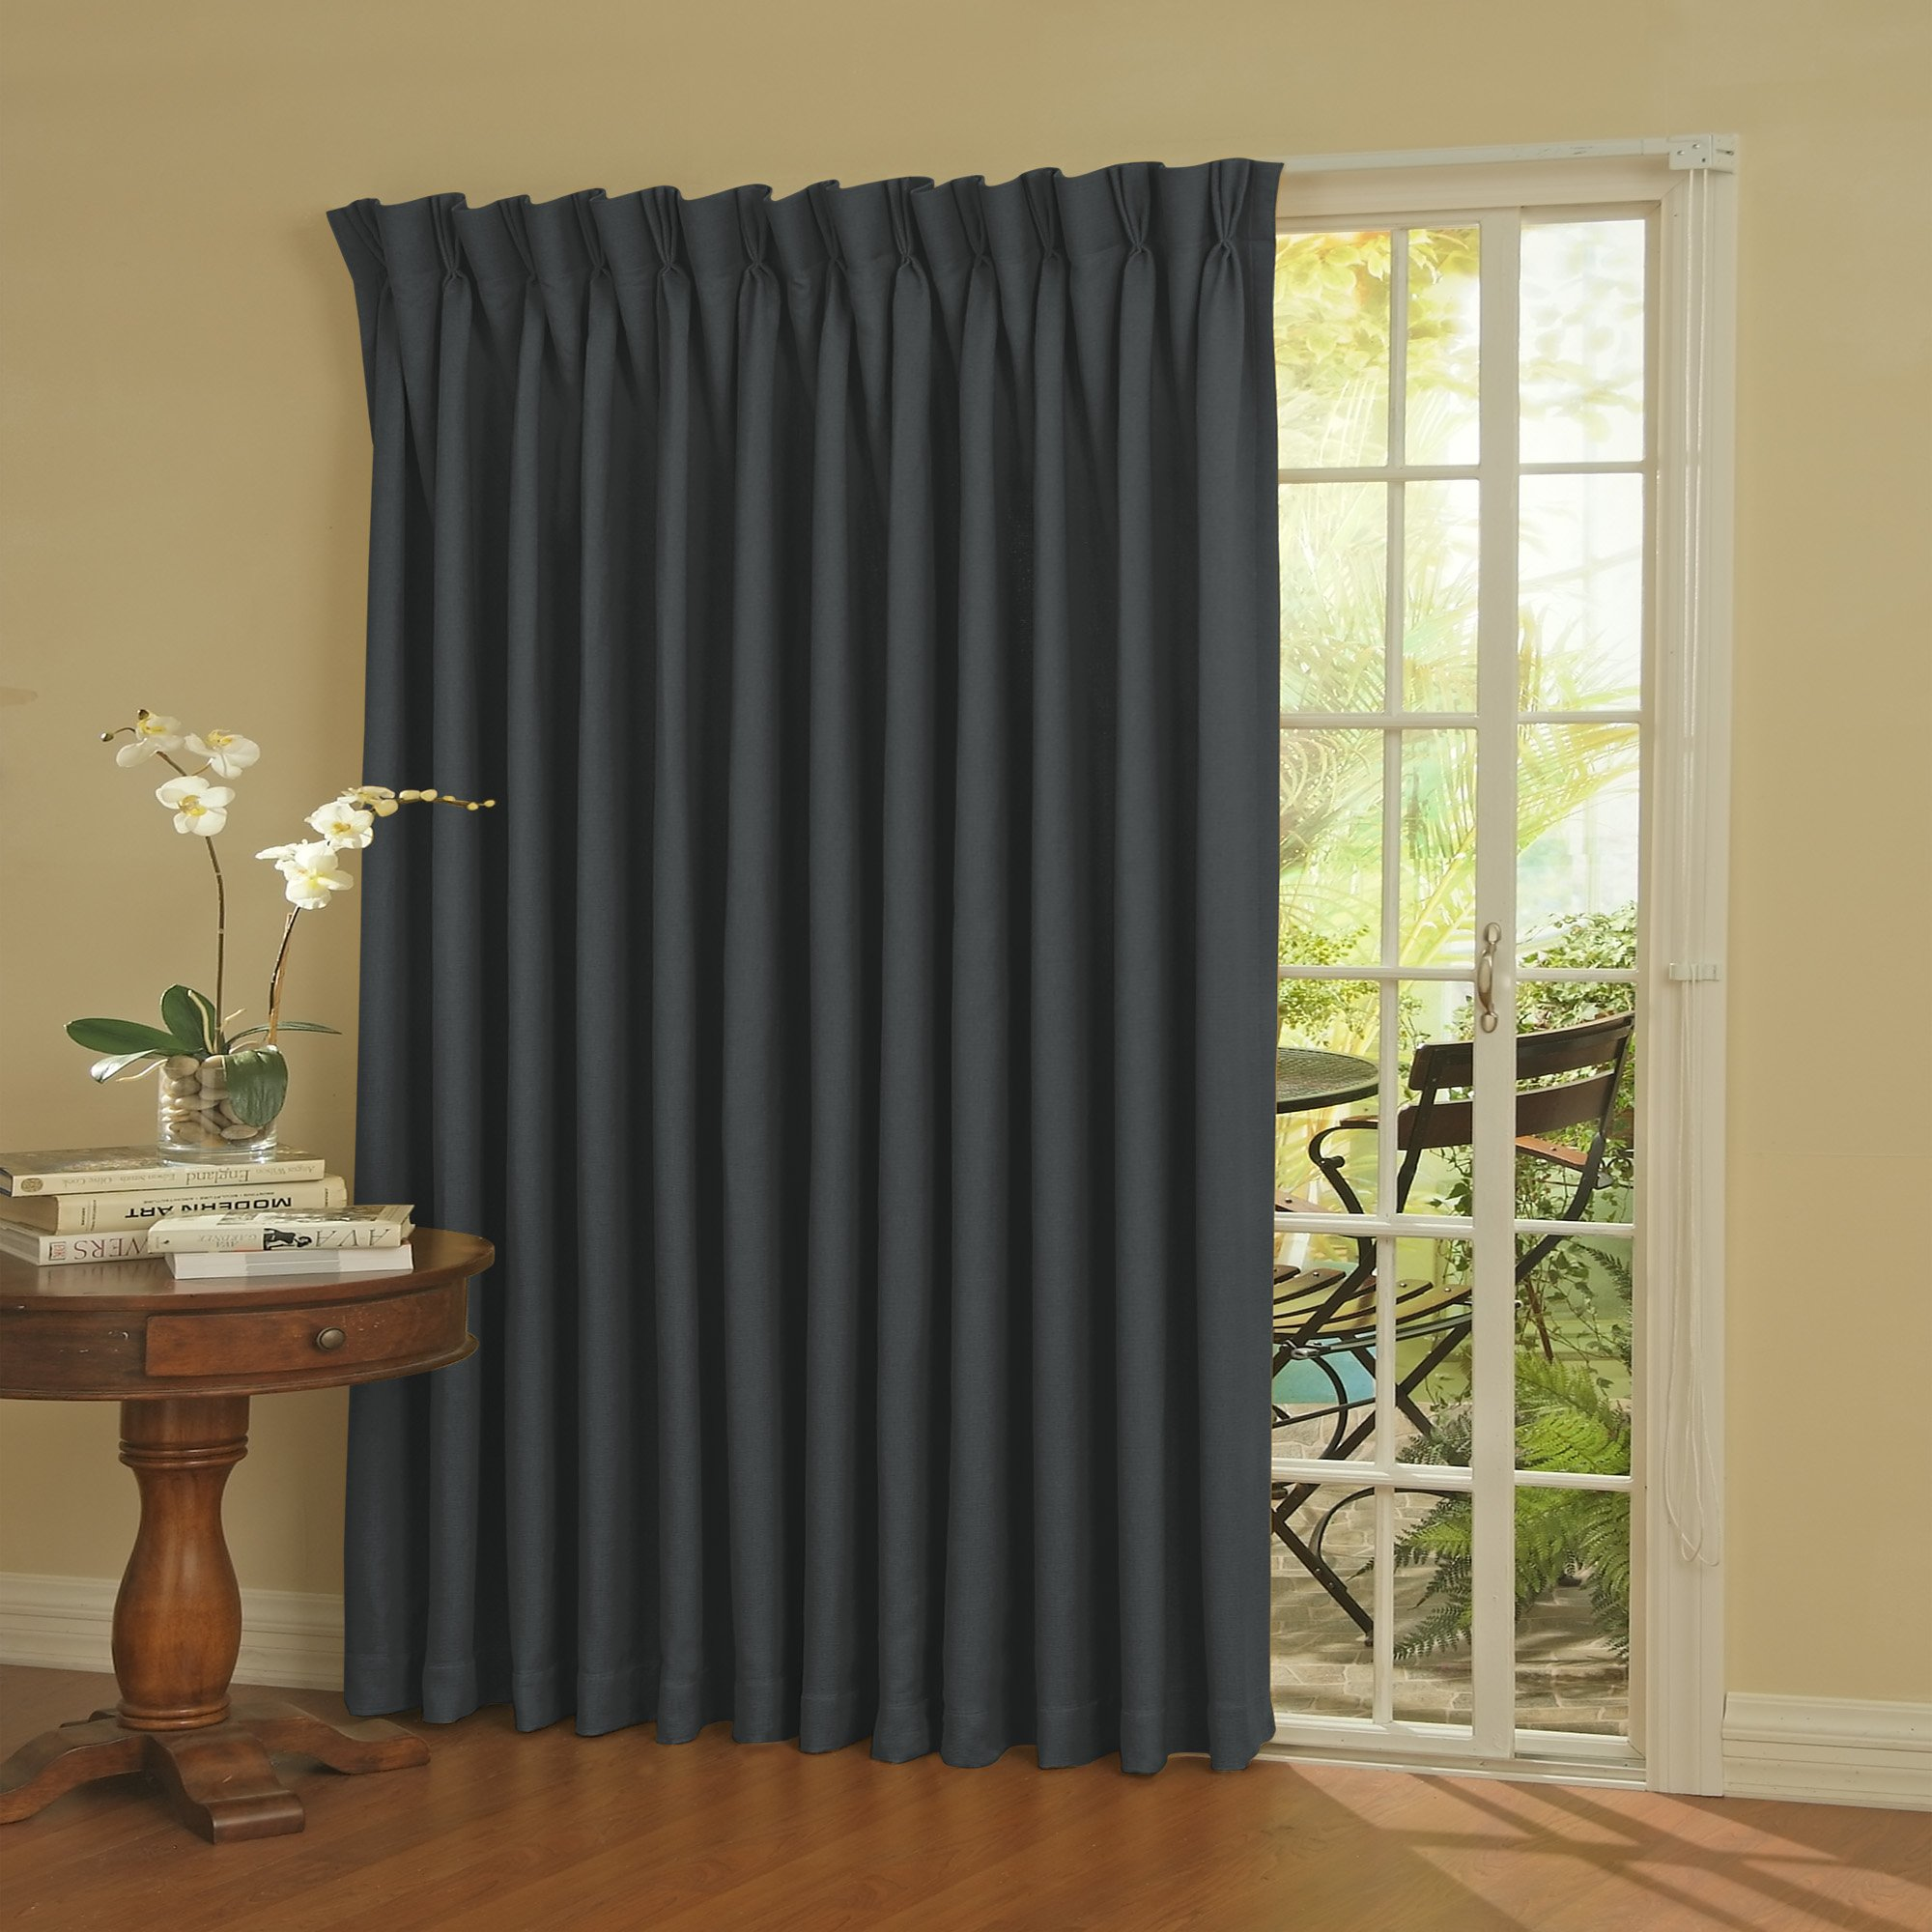 Eclipse Thermal Blackout Curtain 100 Inch